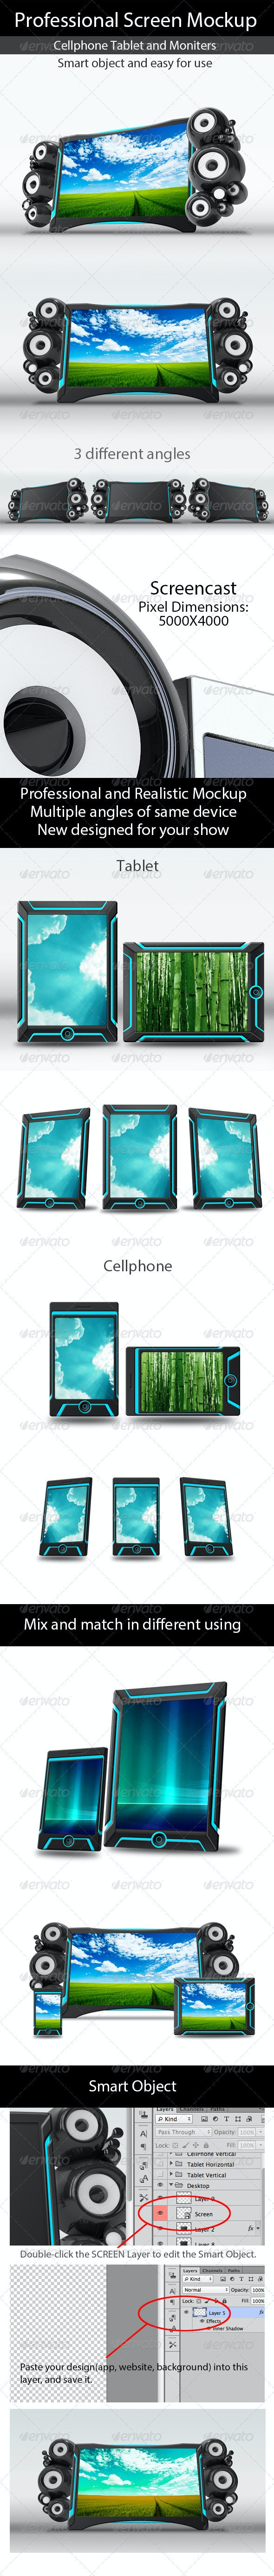 Professional Screen Mockup - Miscellaneous Displays